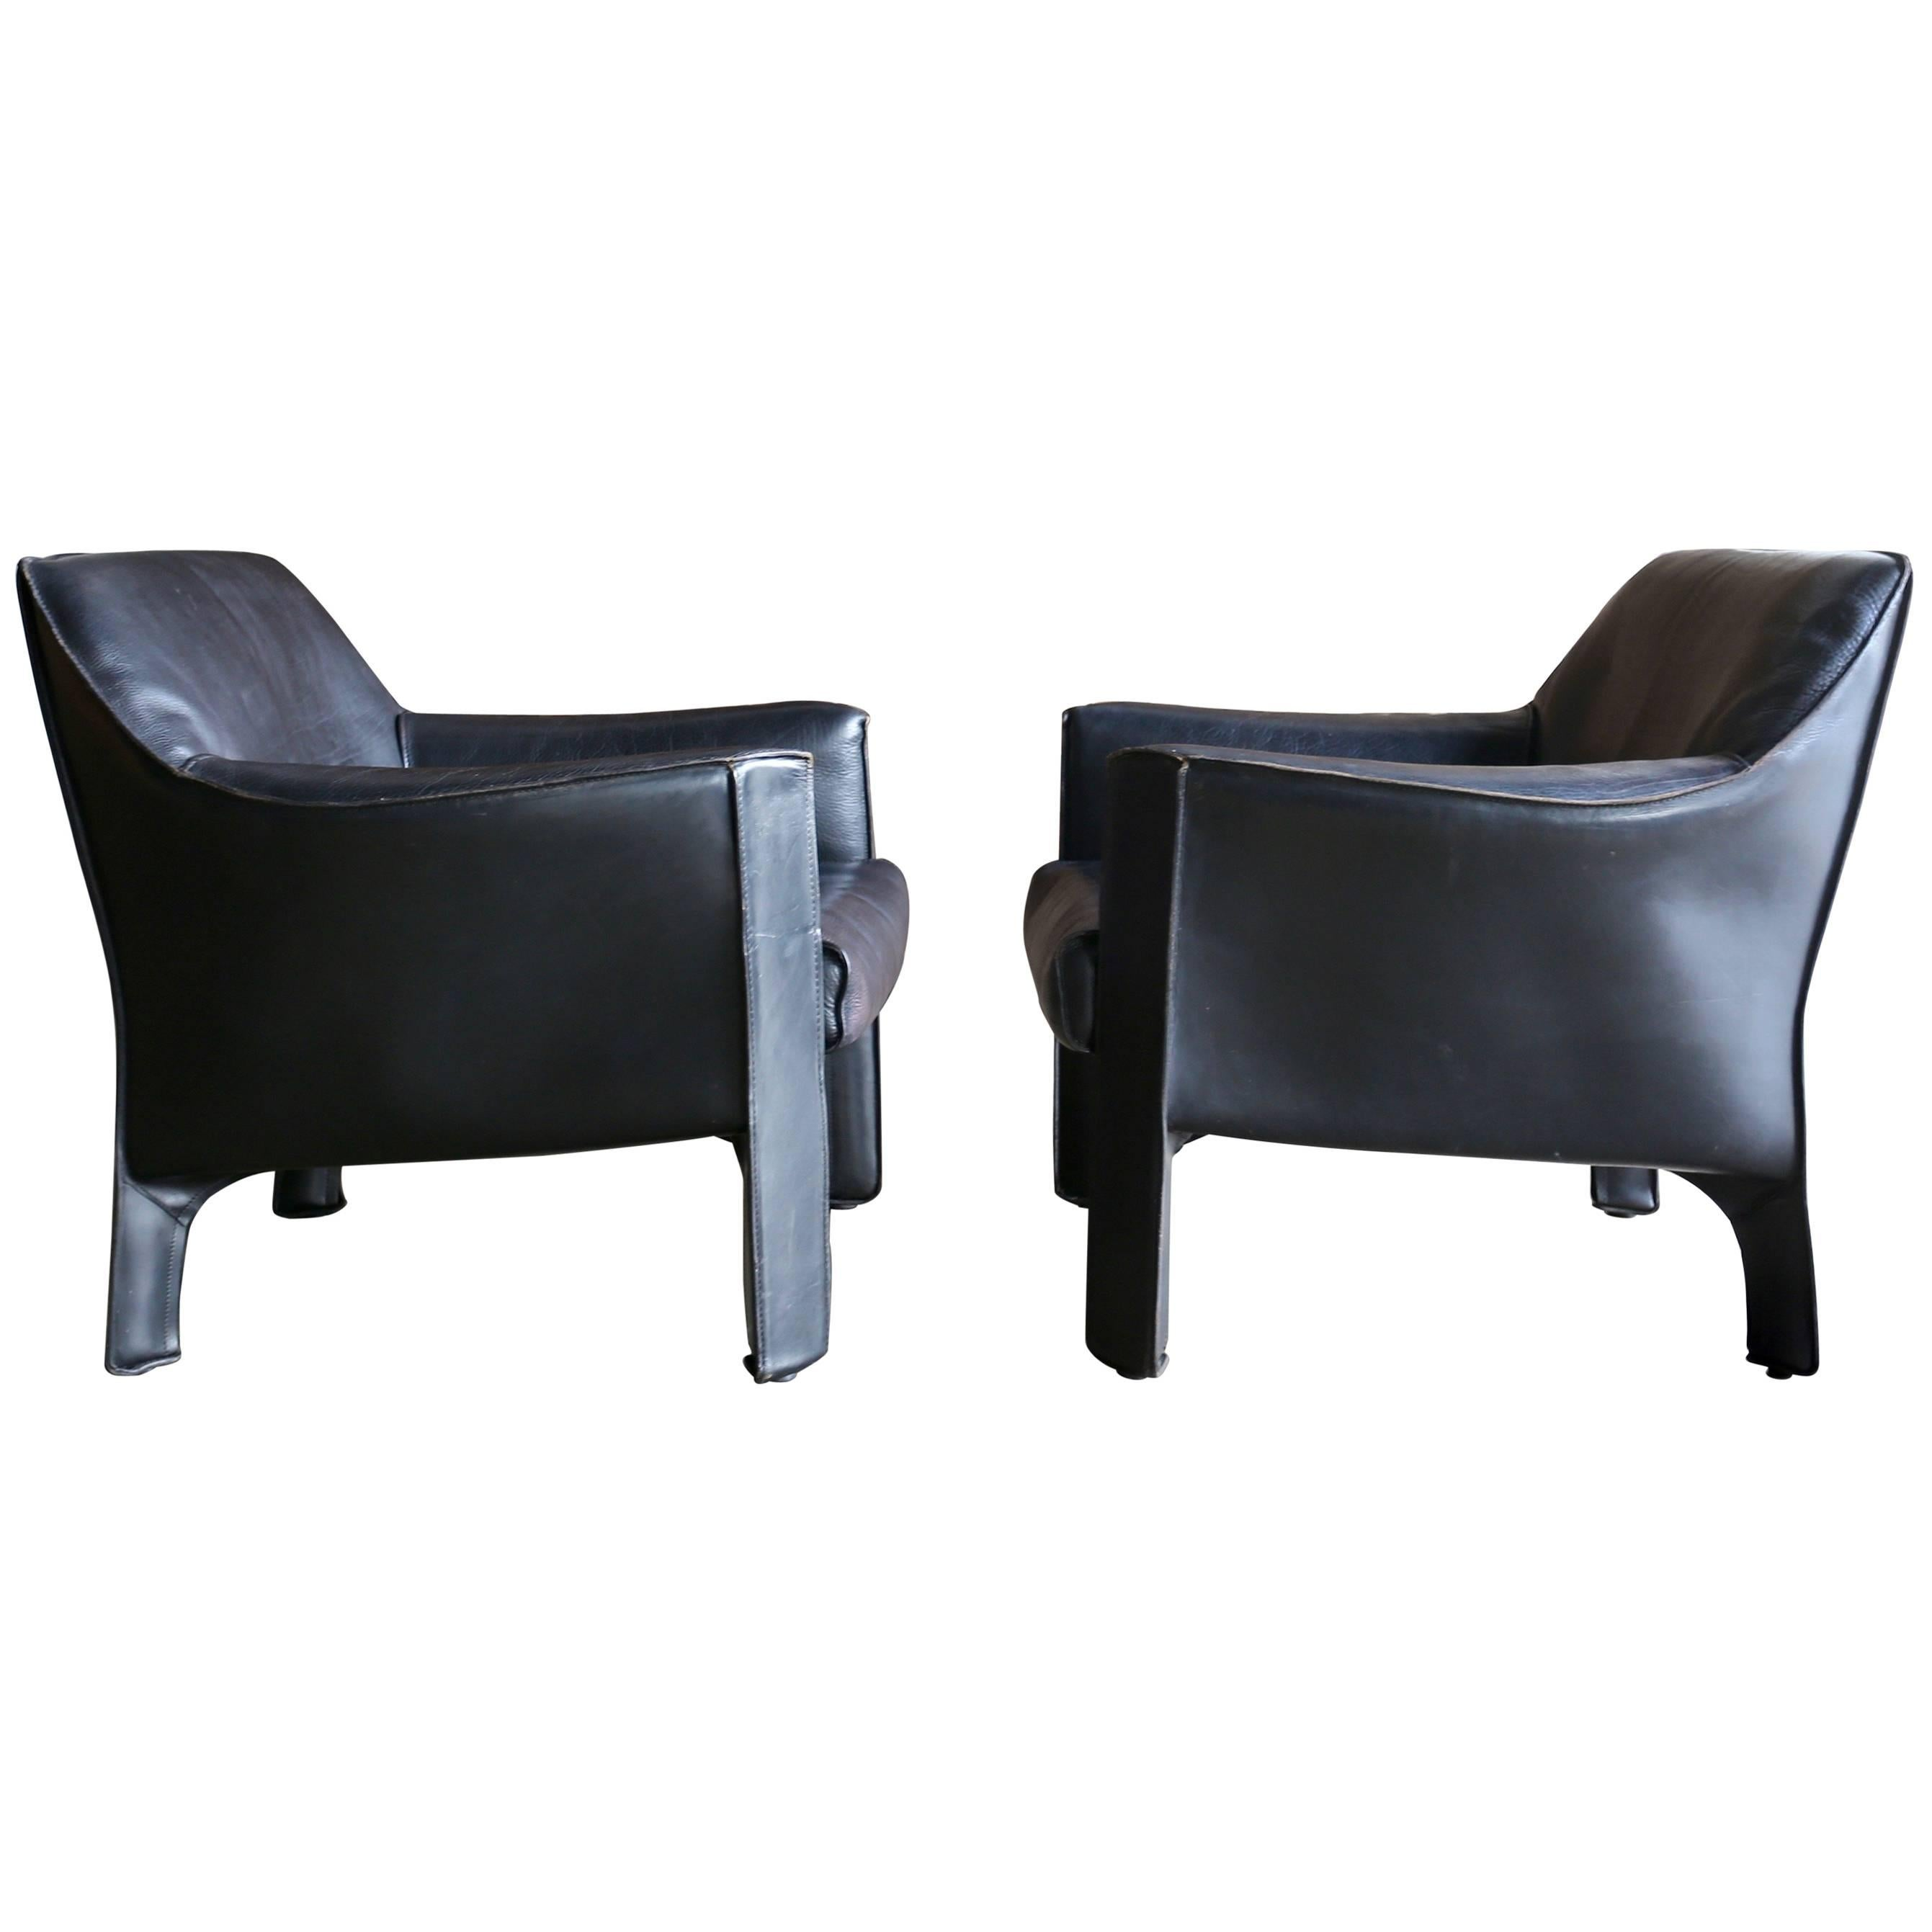 Genial Pair Of Large CAB Lounge Chairs By Mario Bellini For Cassina For Sale